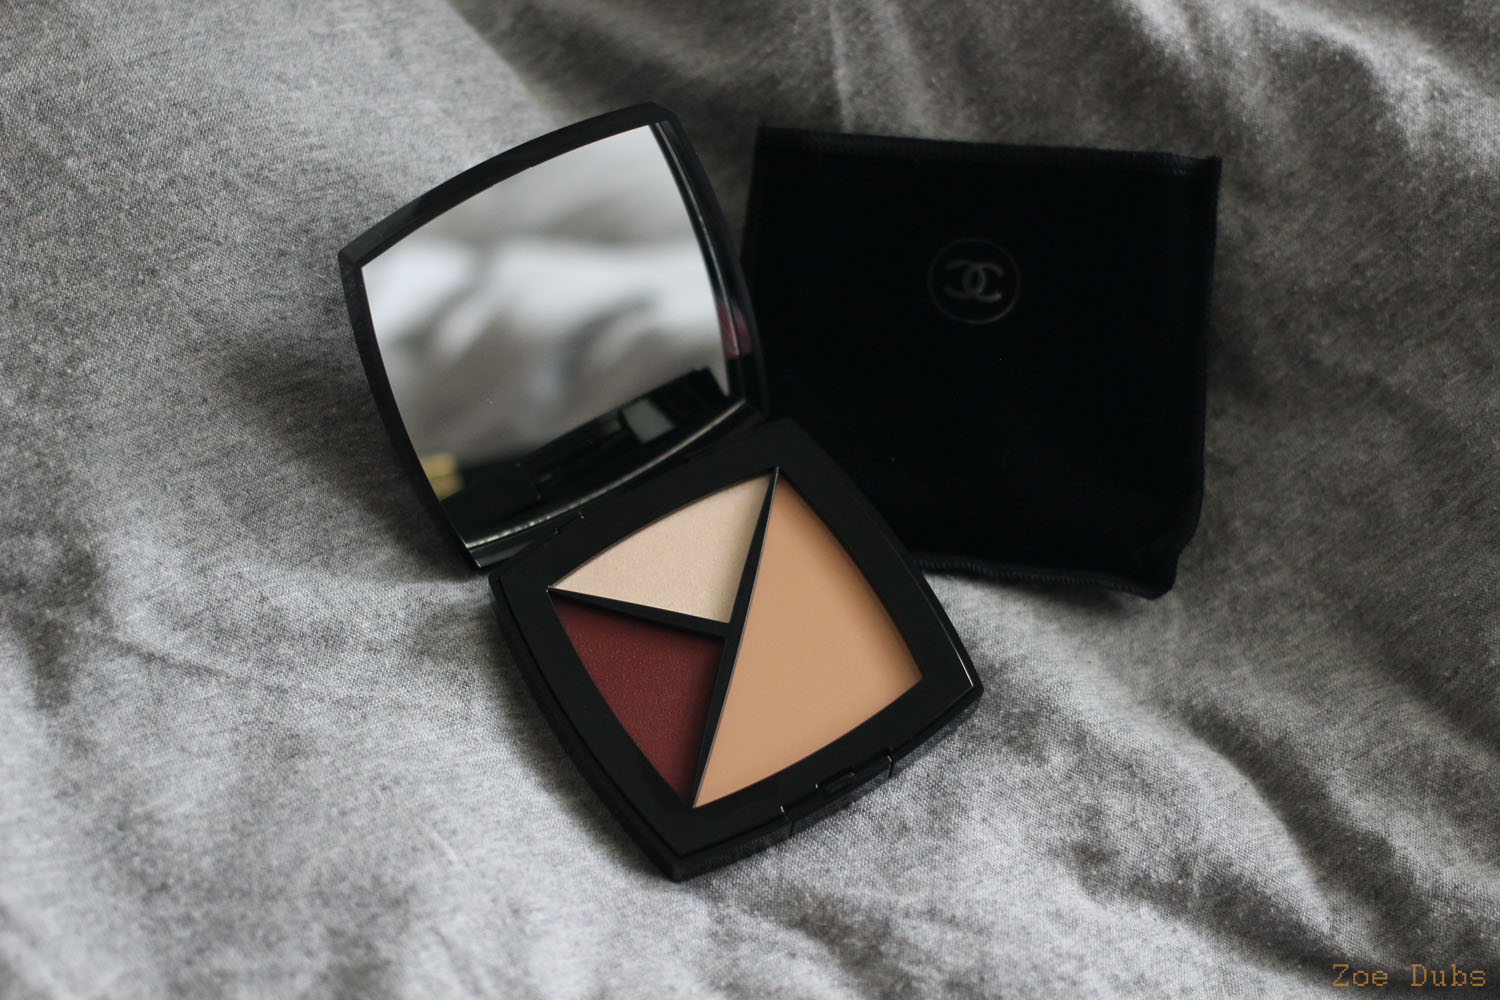 discounted chanel makeup compact